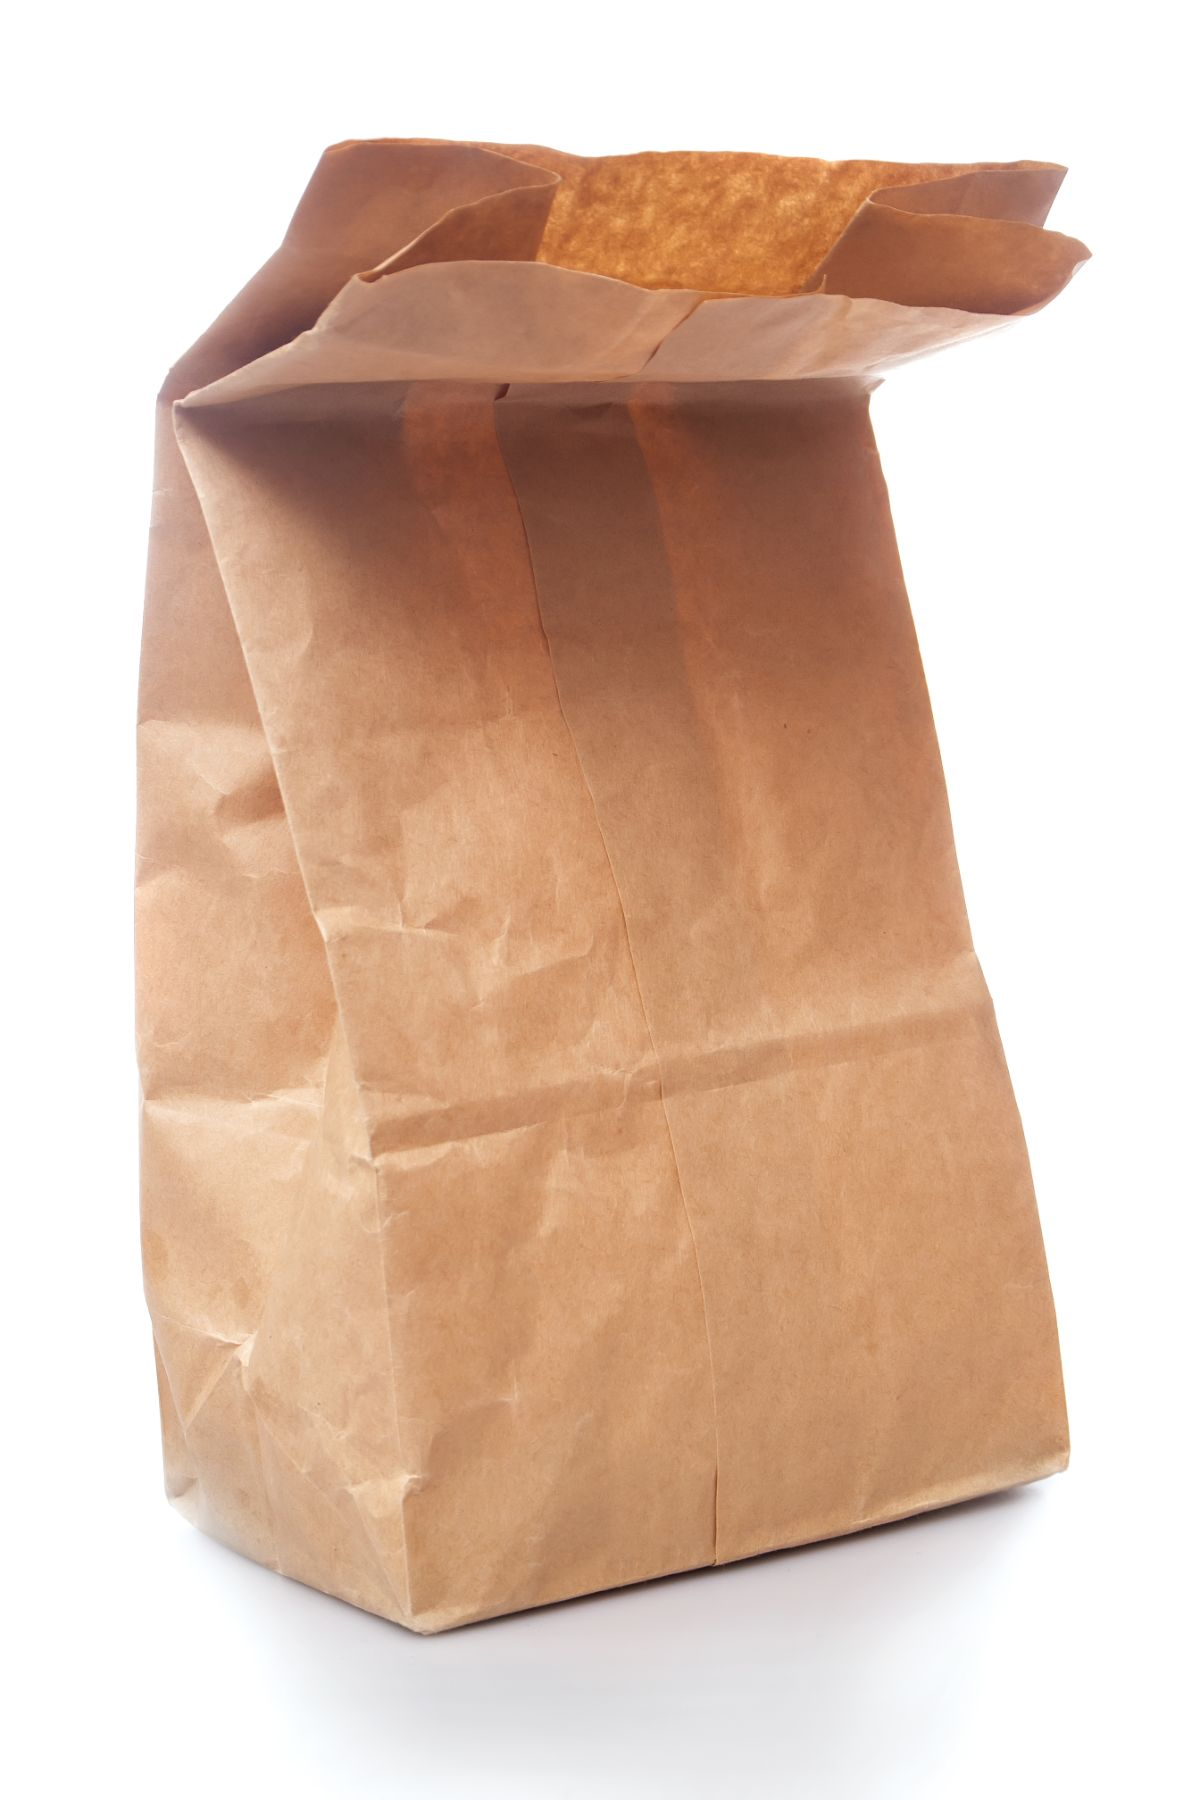 on a white background is a brown paper bag with the top folded over